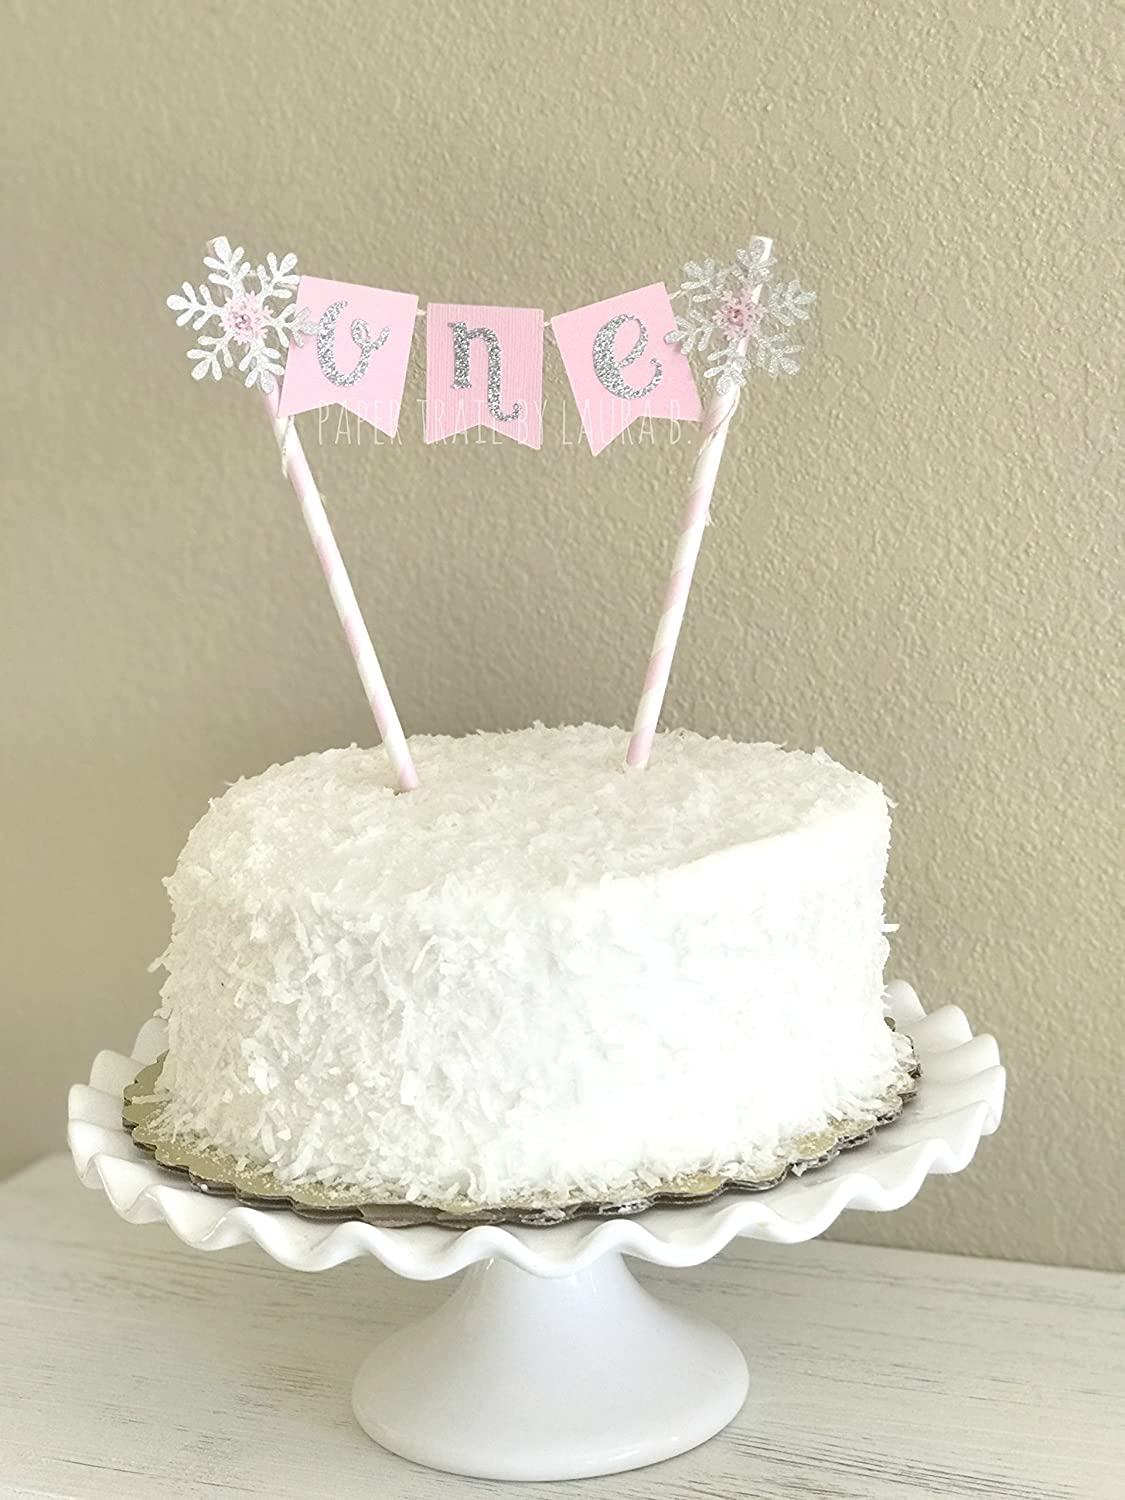 Fabulous Amazon Com Snowflake Cake Topper Pink And Silver Winter Funny Birthday Cards Online Alyptdamsfinfo